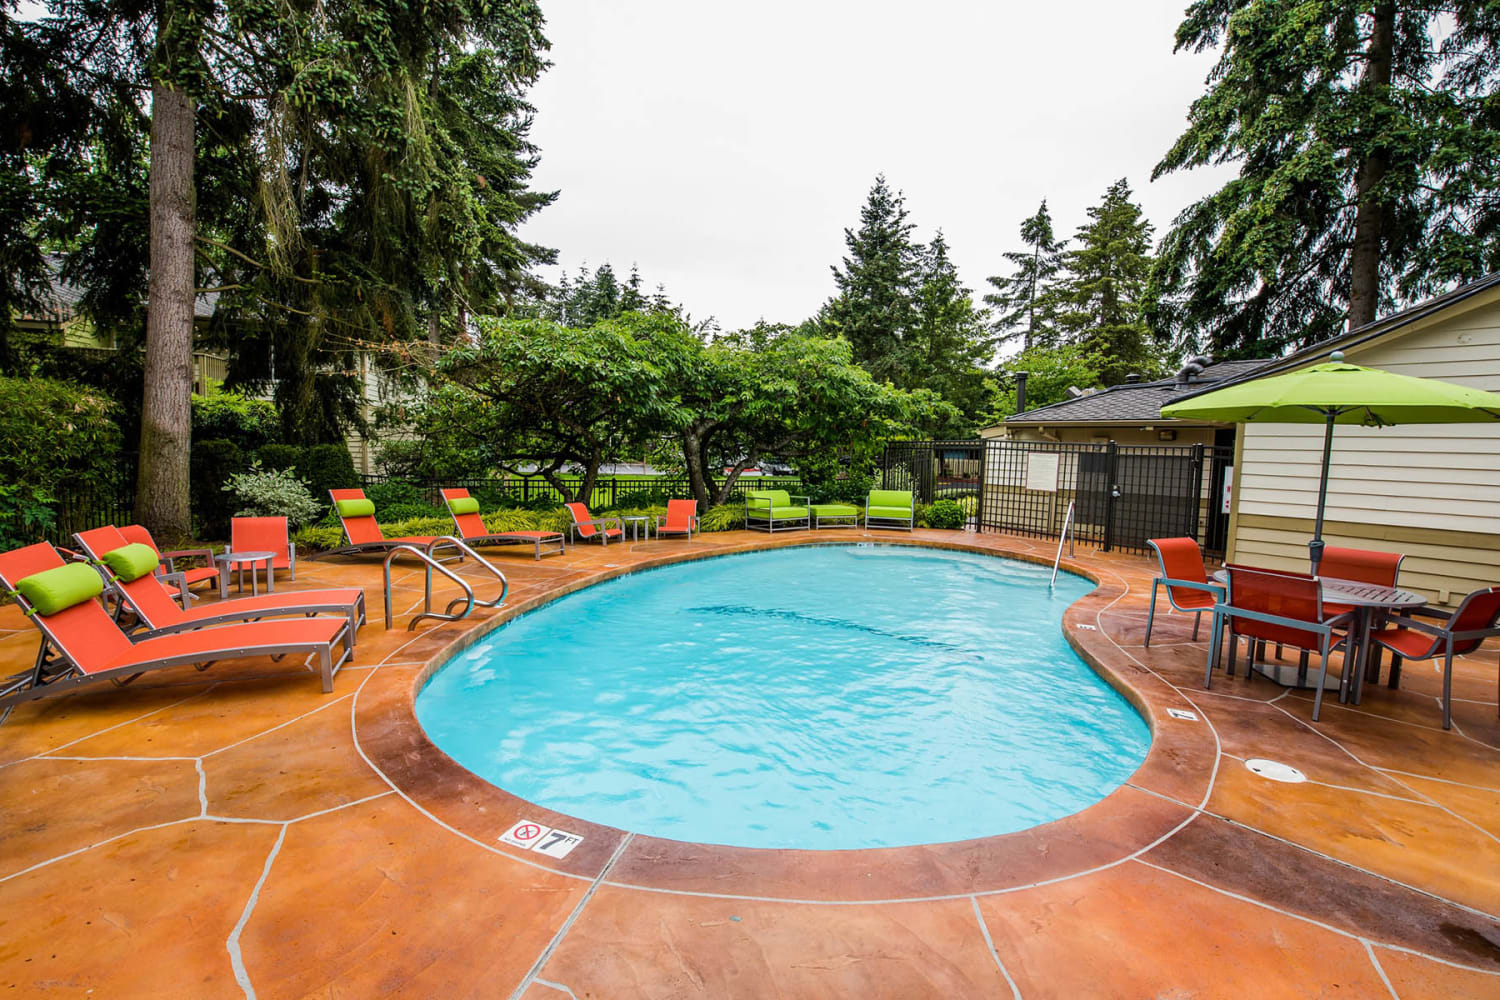 Swimming pool at Edgewood Park Apartments in Bellevue, Washington